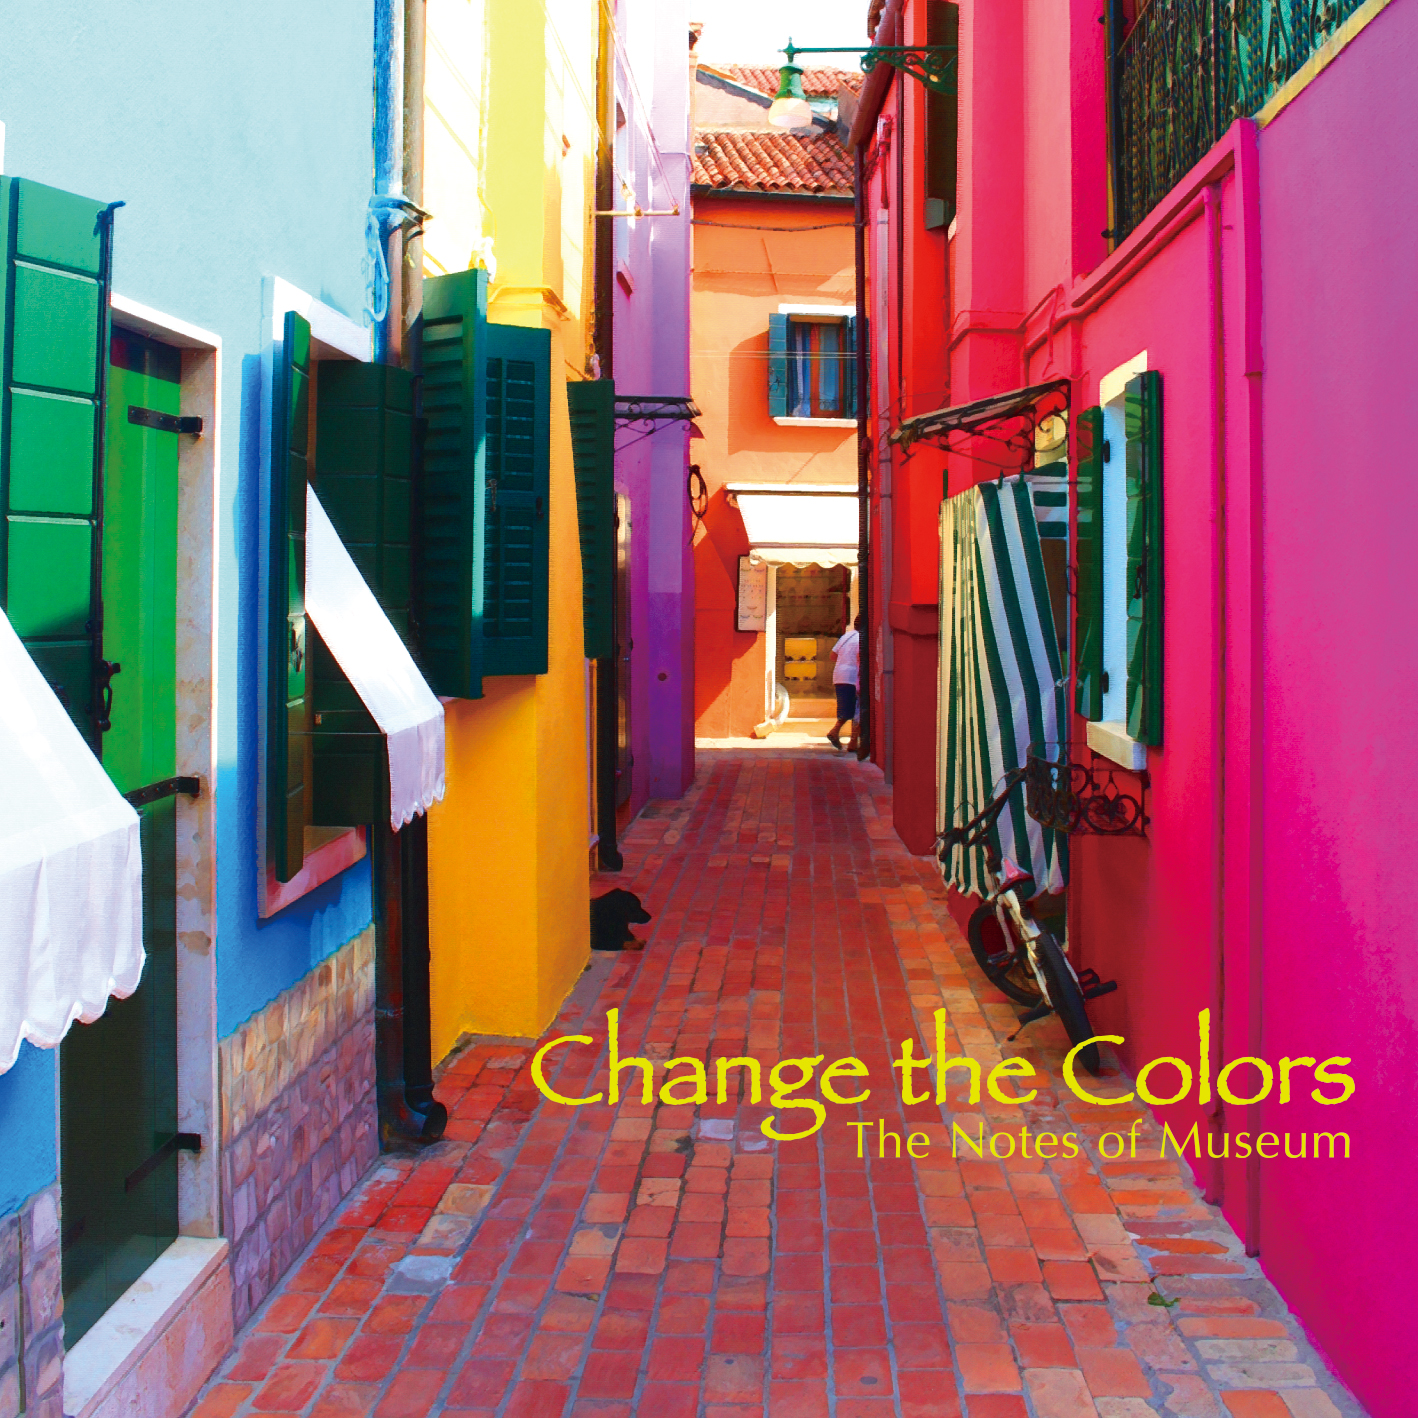 Change the Colors